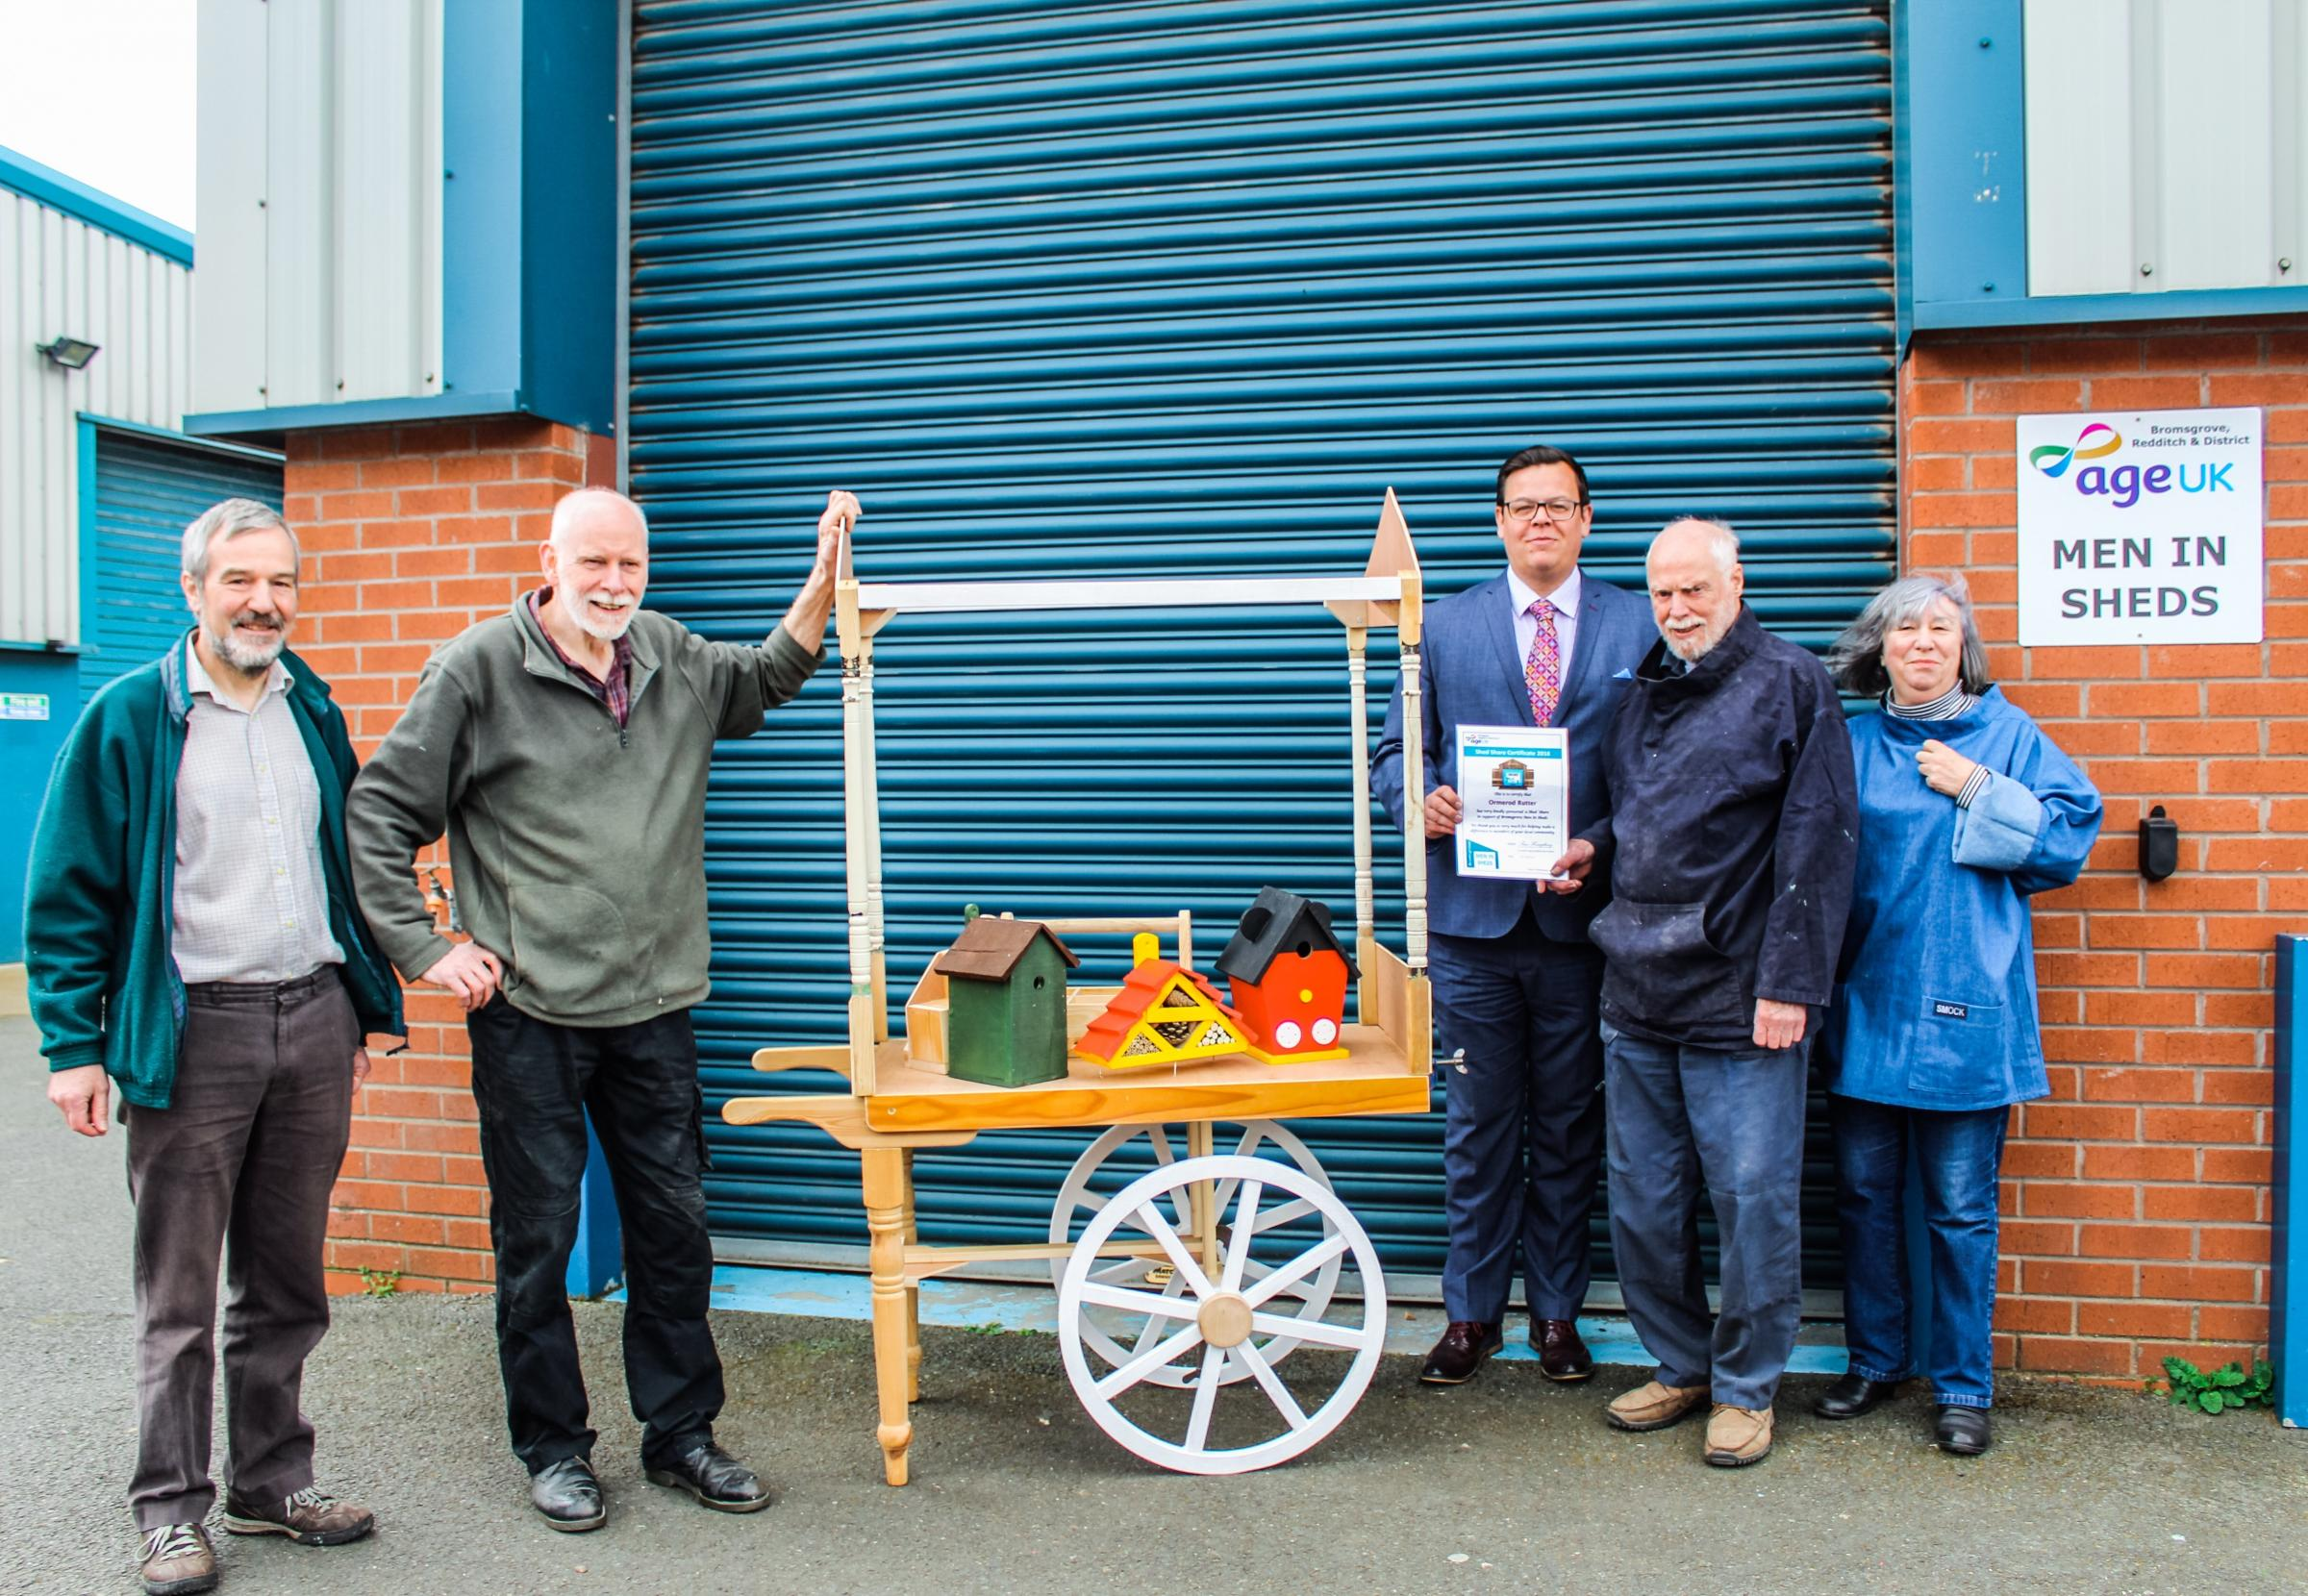 SHARE: Droitwich-based accountants Ormerod Rutter sponsor a shed for Age UK scheme to help over 50s come together.